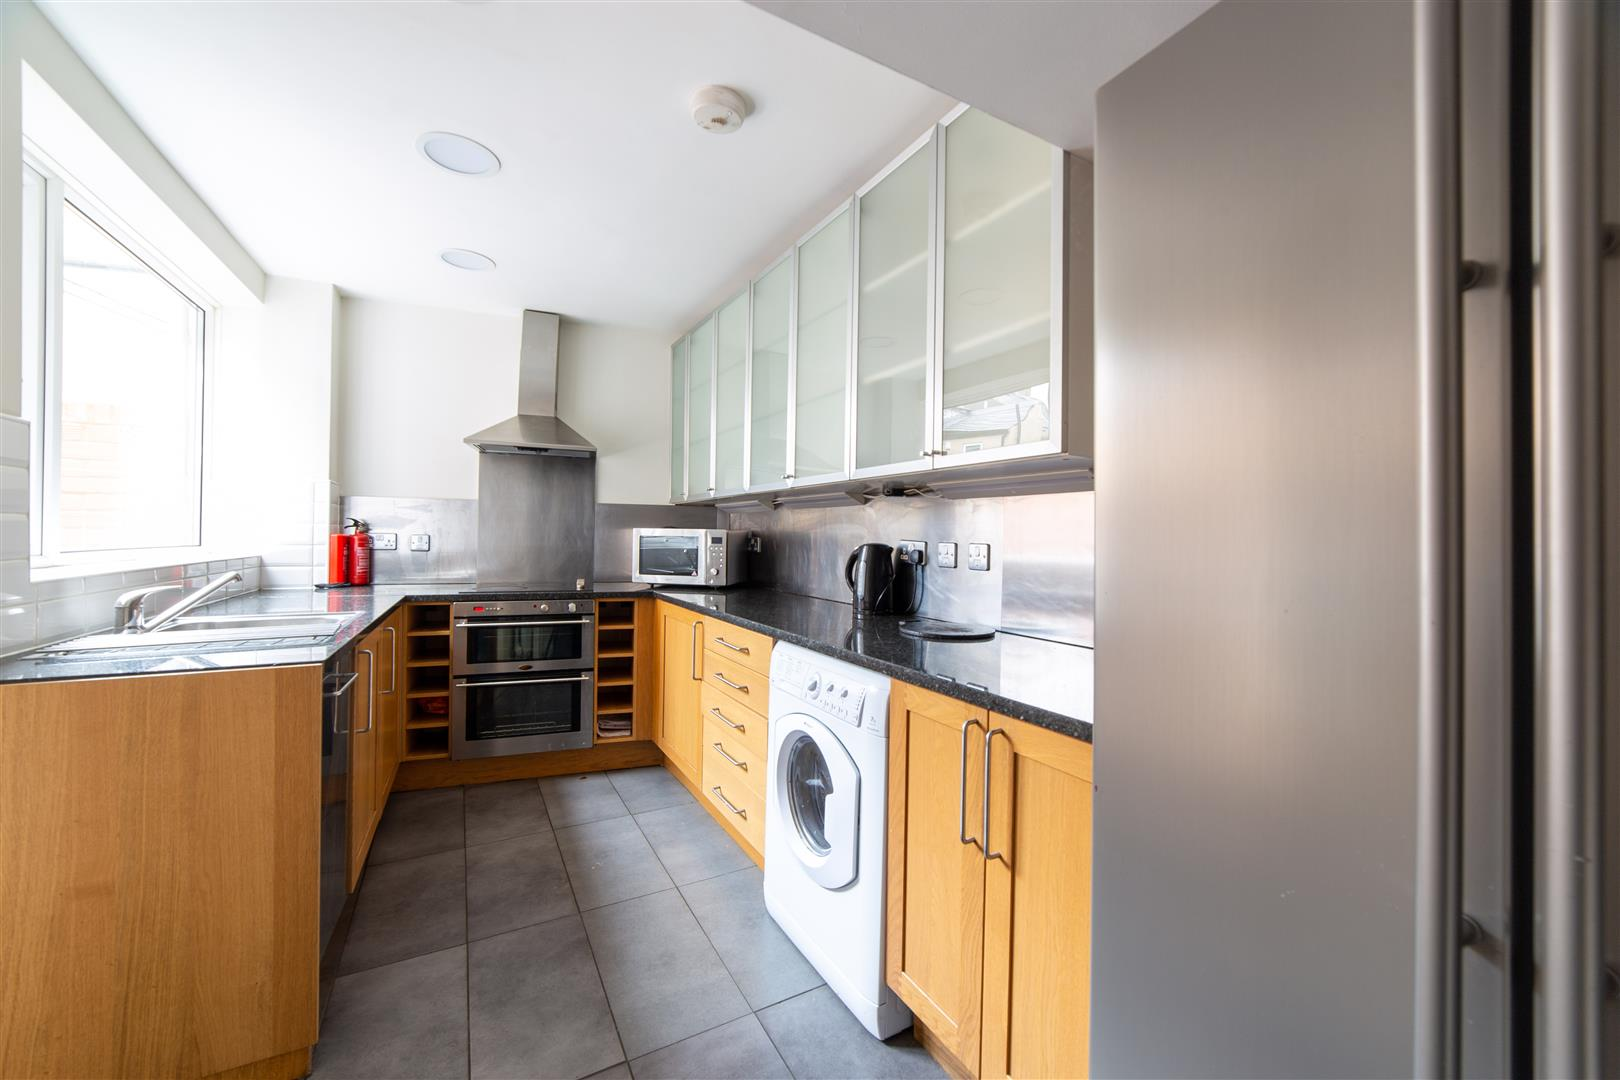 6 bed terraced house to rent in Sandyford, NE2 1AY 3